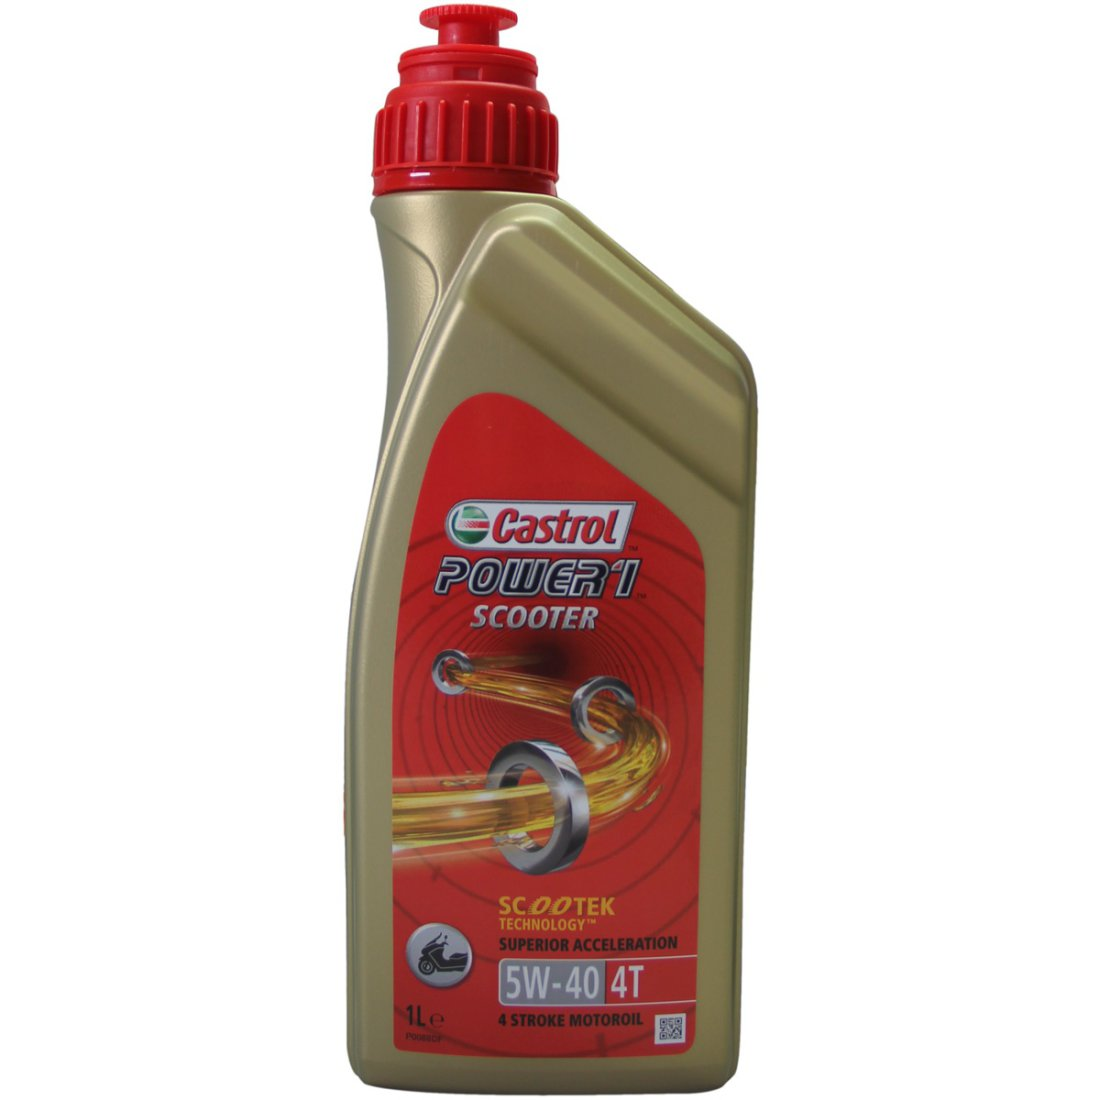 5 W 40 Castrol Power 1 Scooter 4t 1l 5w 40 Oil And Spray